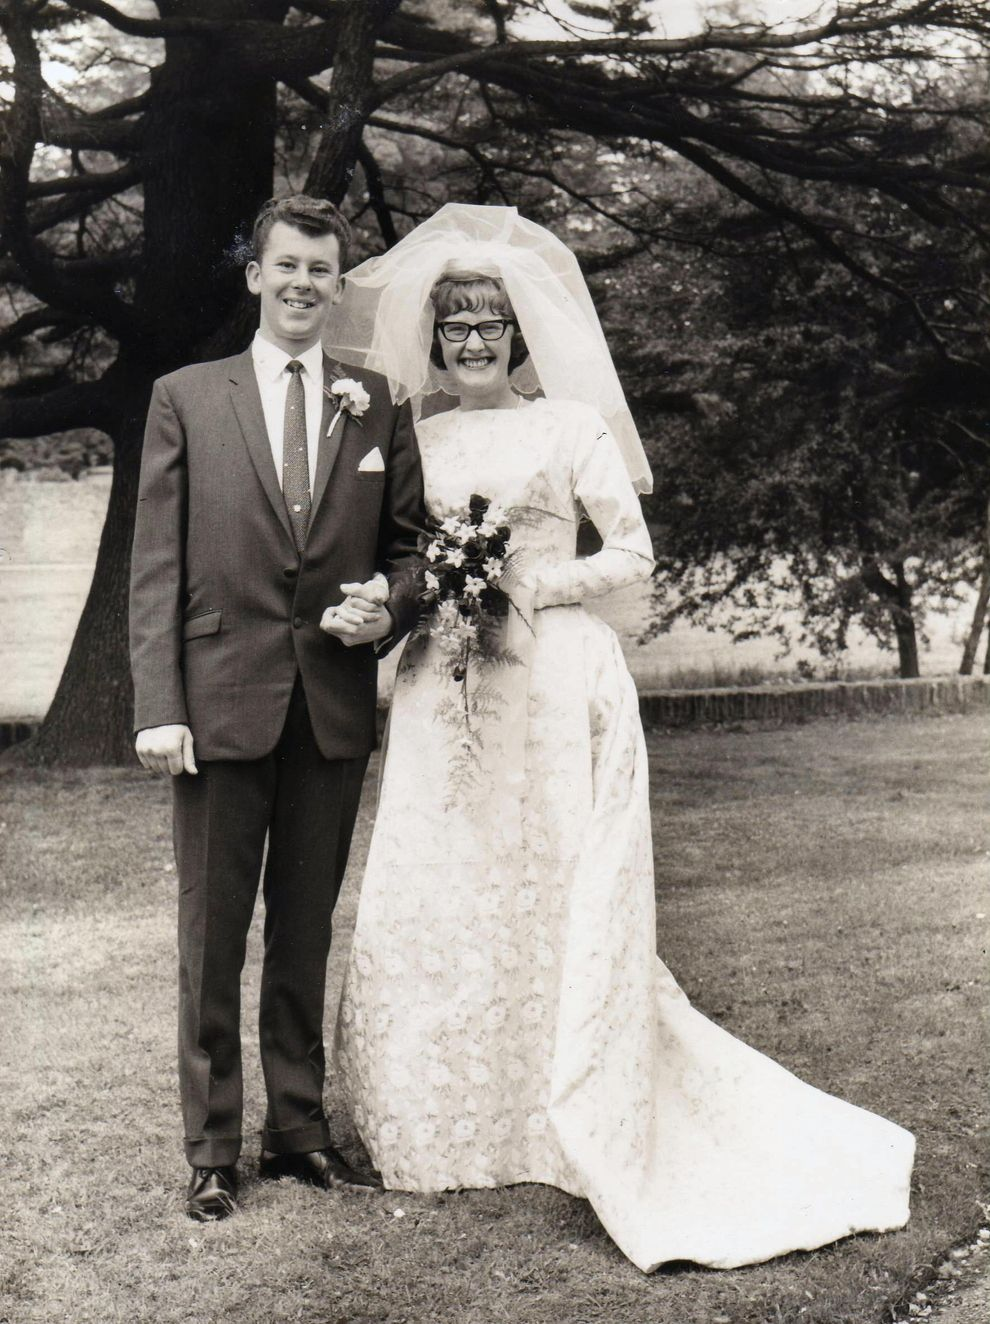 Cat eye glasses forever. | 60 Adorable Real Vintage Wedding Photos From The '60s